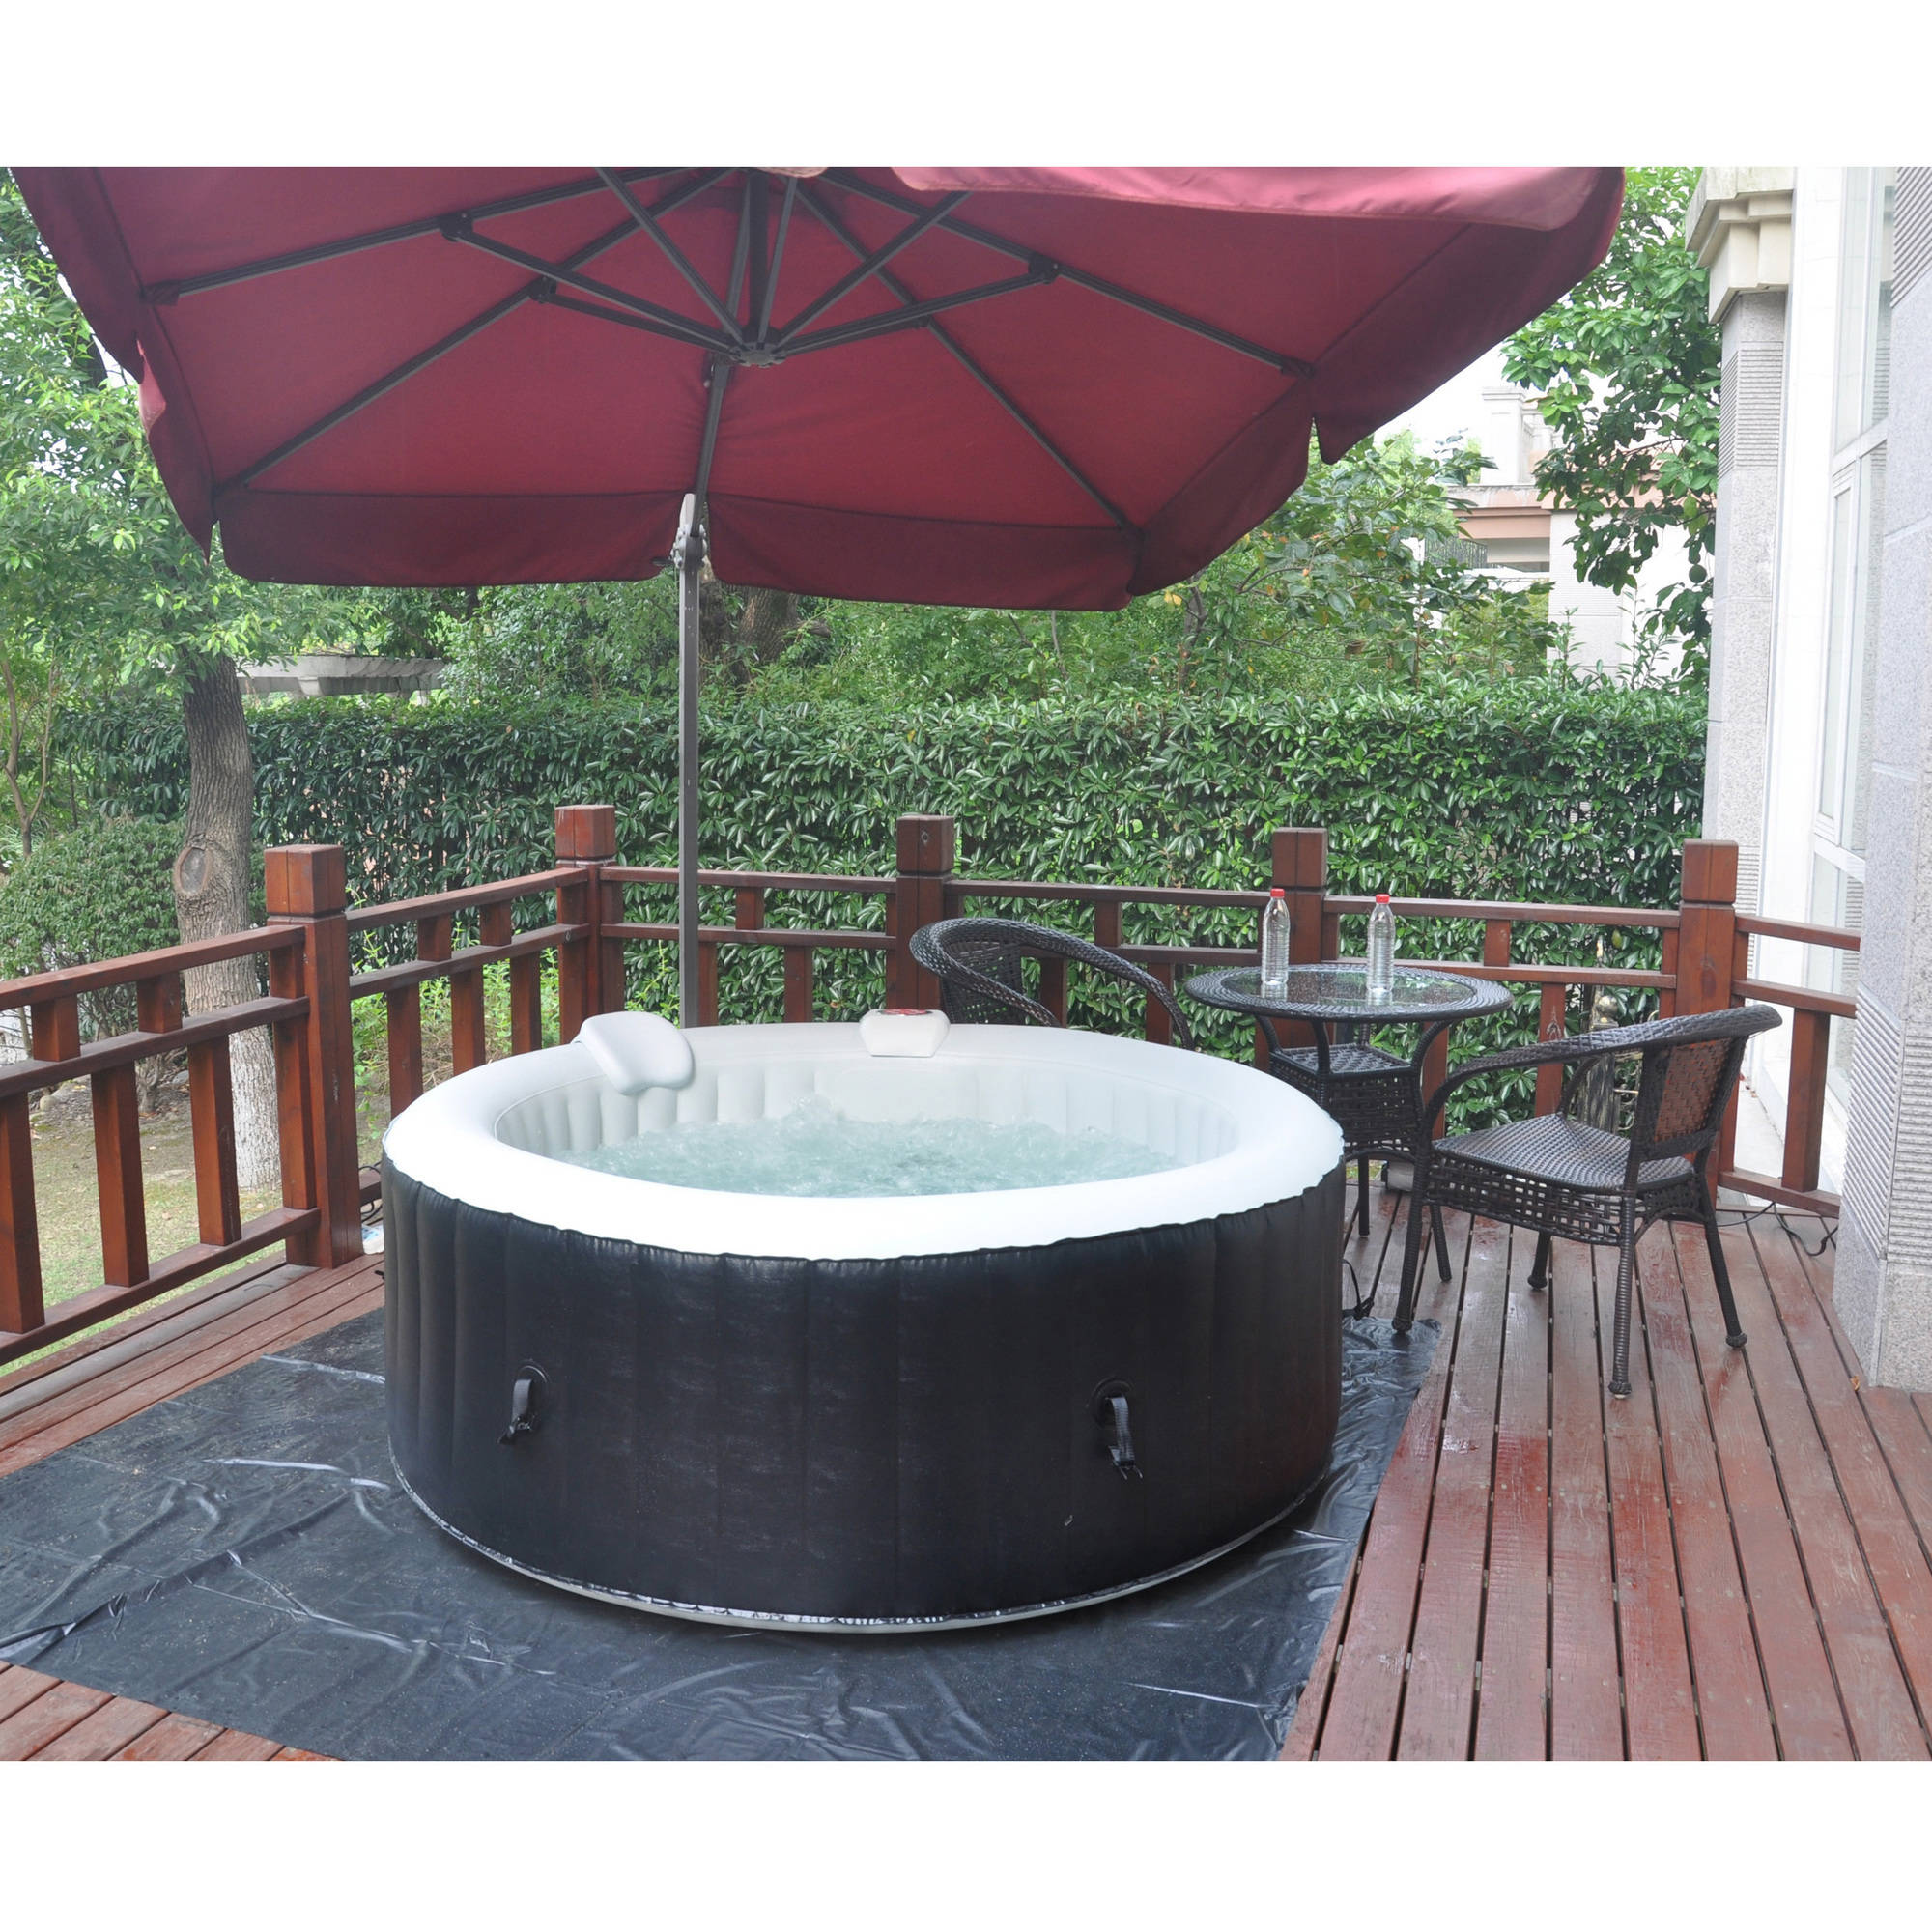 bb uhs play lifesmart reviews with select n plug home hot stainless b tub aquarest the spas outdoors saunas person depot and tubs